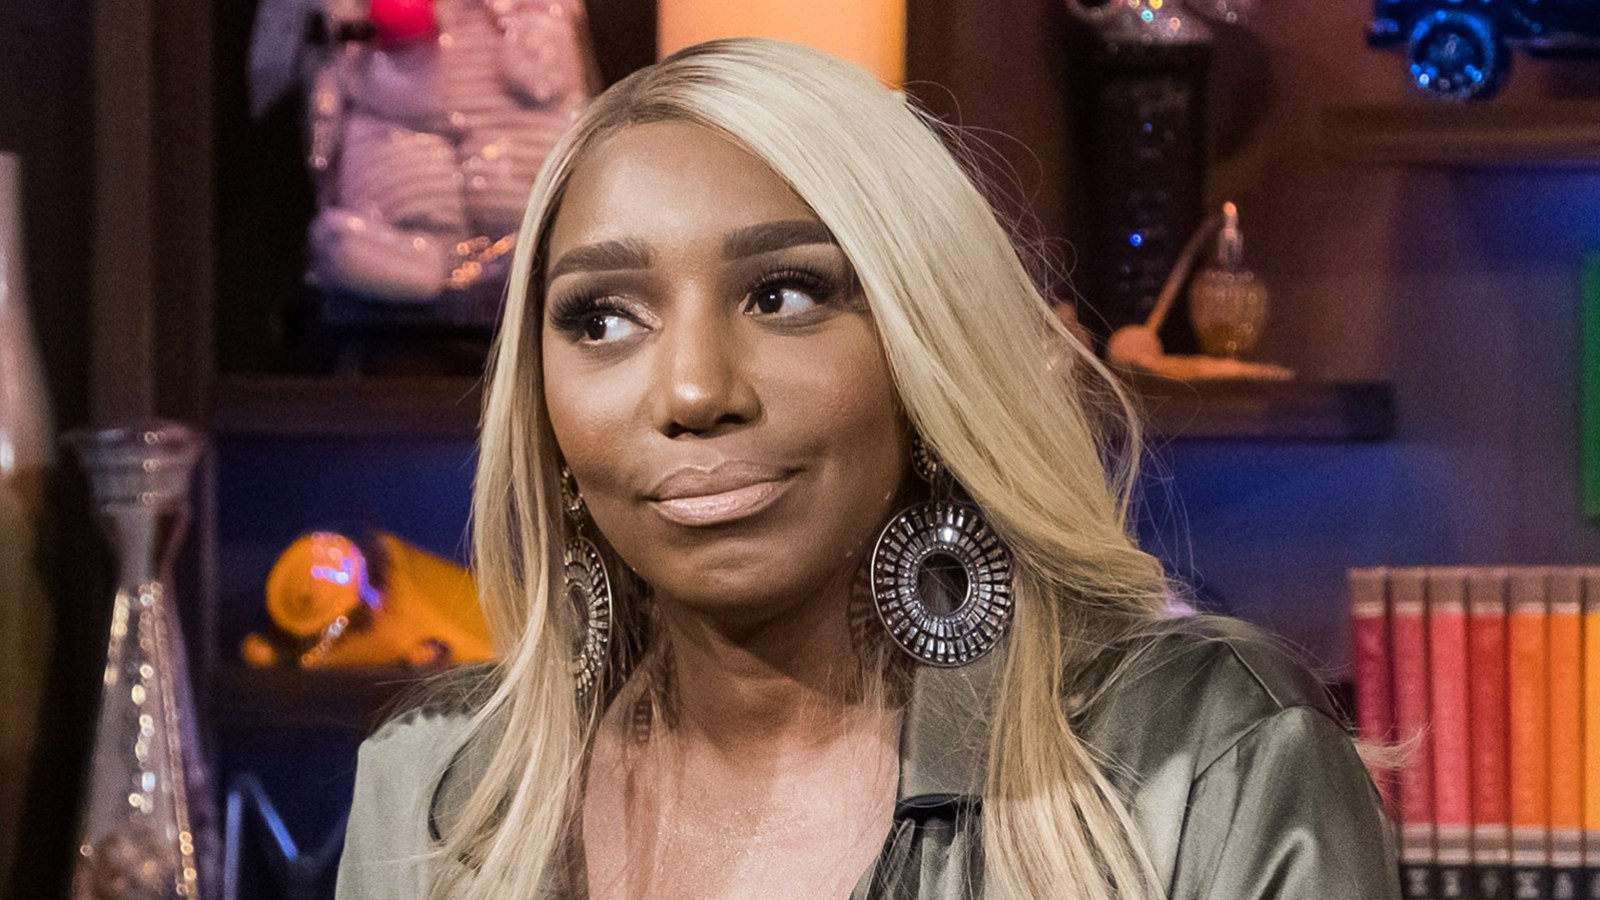 nene-leakes-pays-her-respects-to-nipsey-hussles-family-especially-to-lauren-london-but-people-bully-her